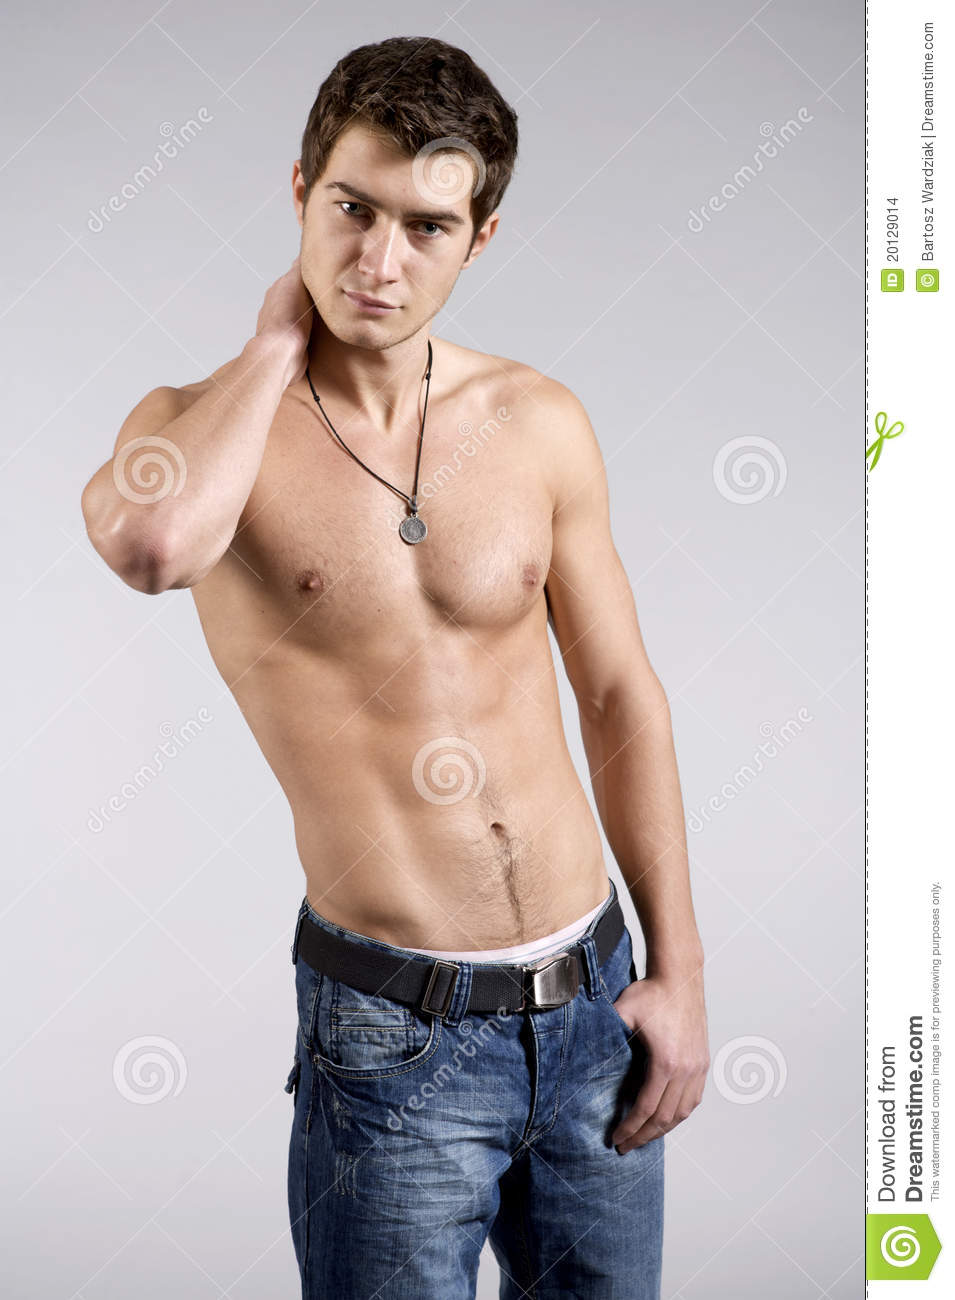 Young male underwear model stock photo. Image of model ...